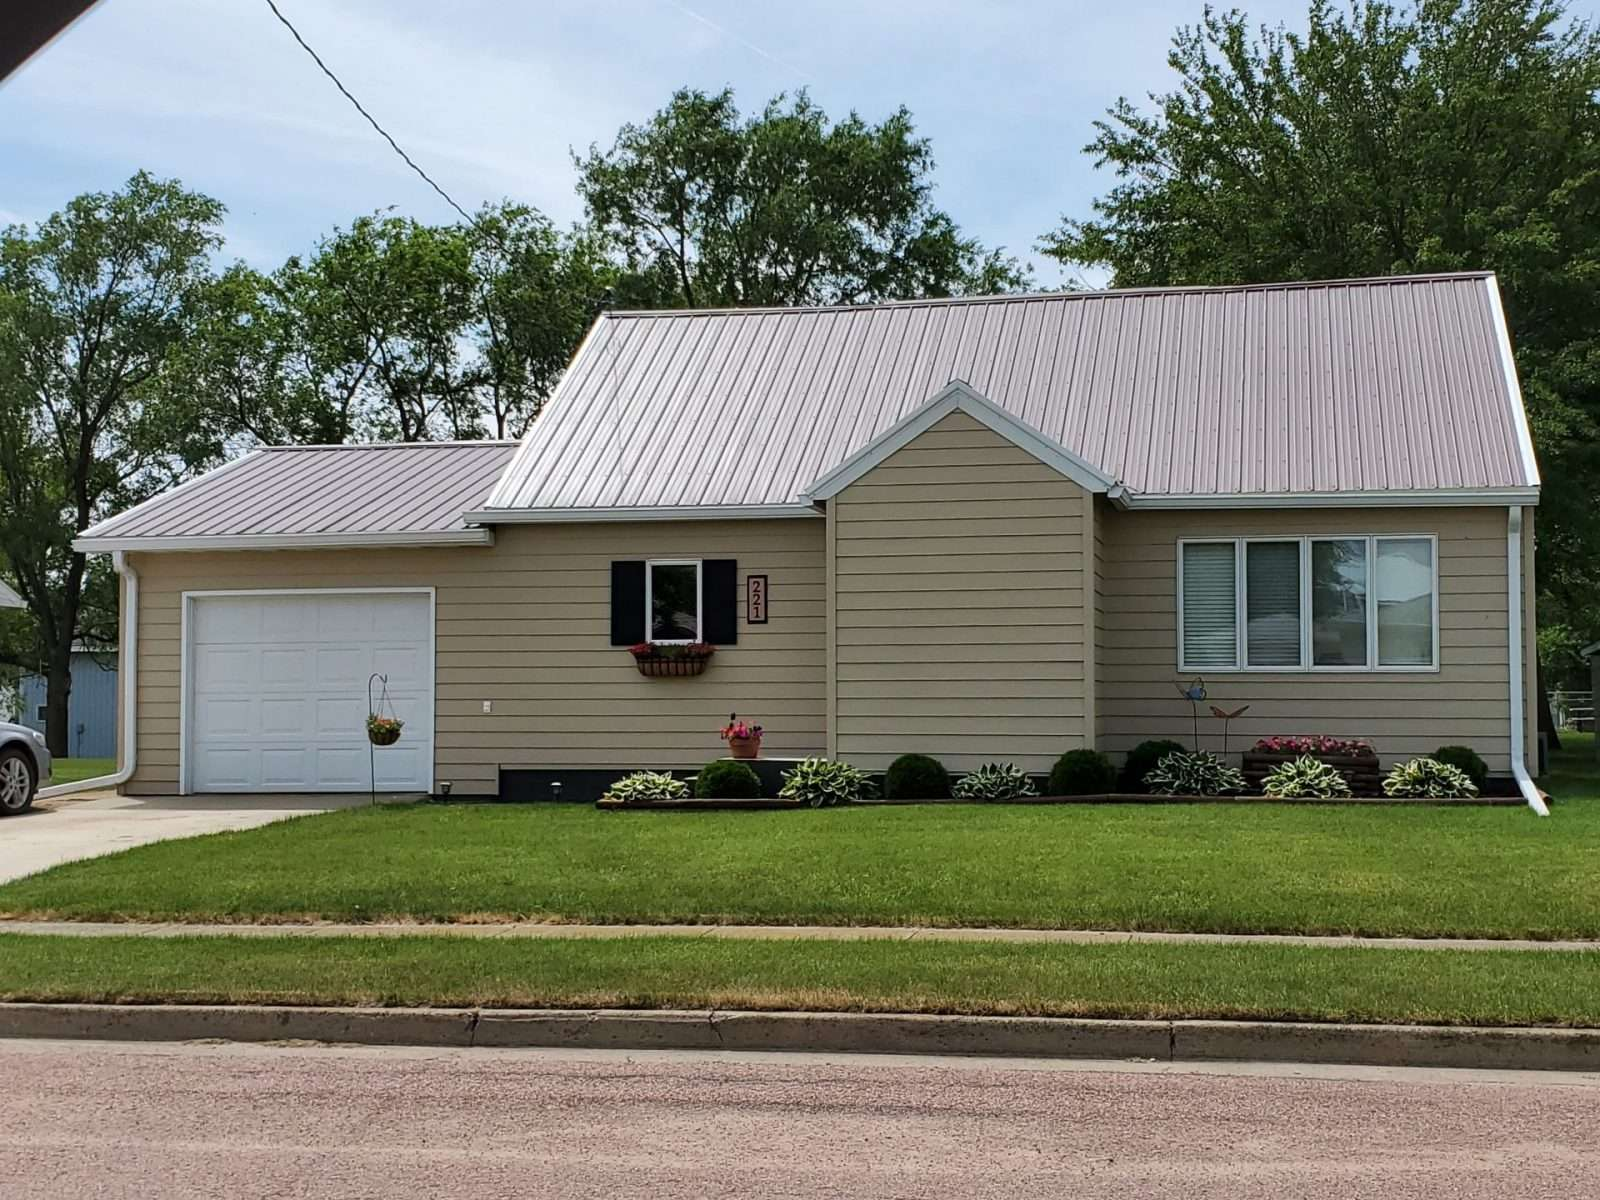 221 N. Idaho St. - Salem SD  57058